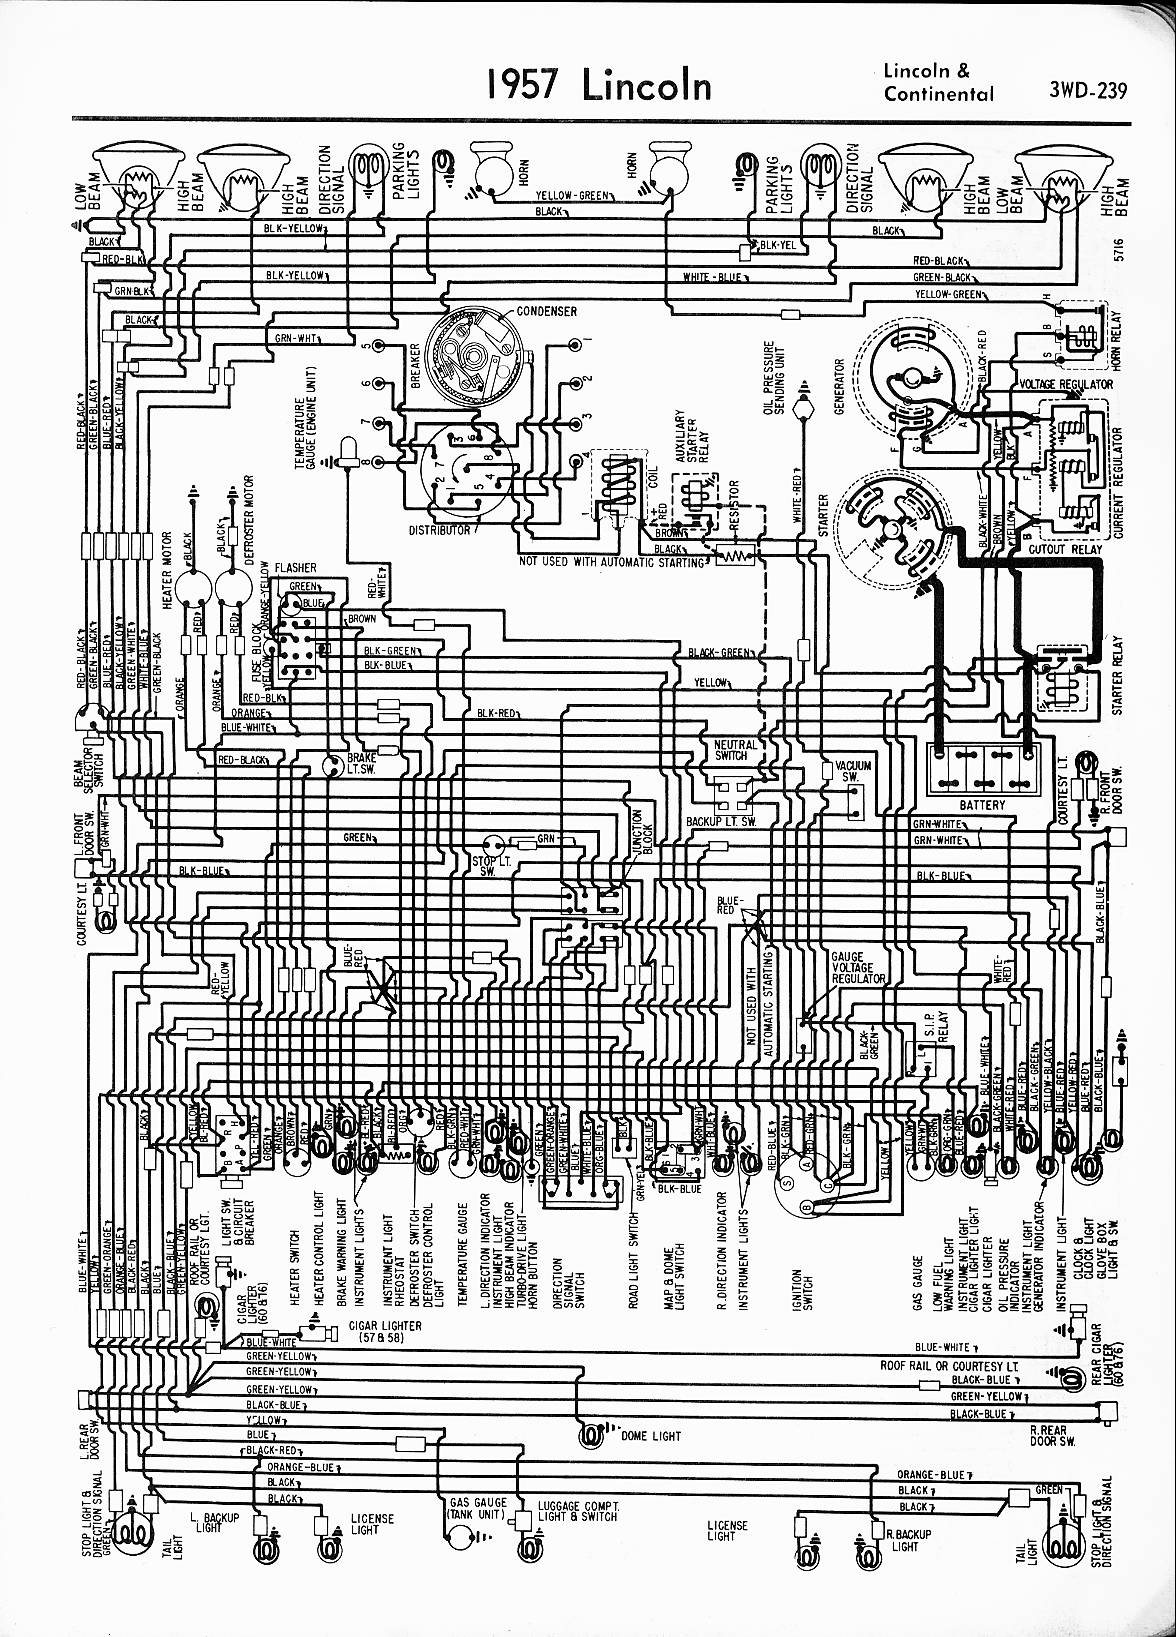 MWireLin_Lin57_z3wd 239z_001 lincoln wiring diagrams 1949 lincoln wiring diagram \u2022 free wiring lincoln foot pedal wiring diagram at bakdesigns.co